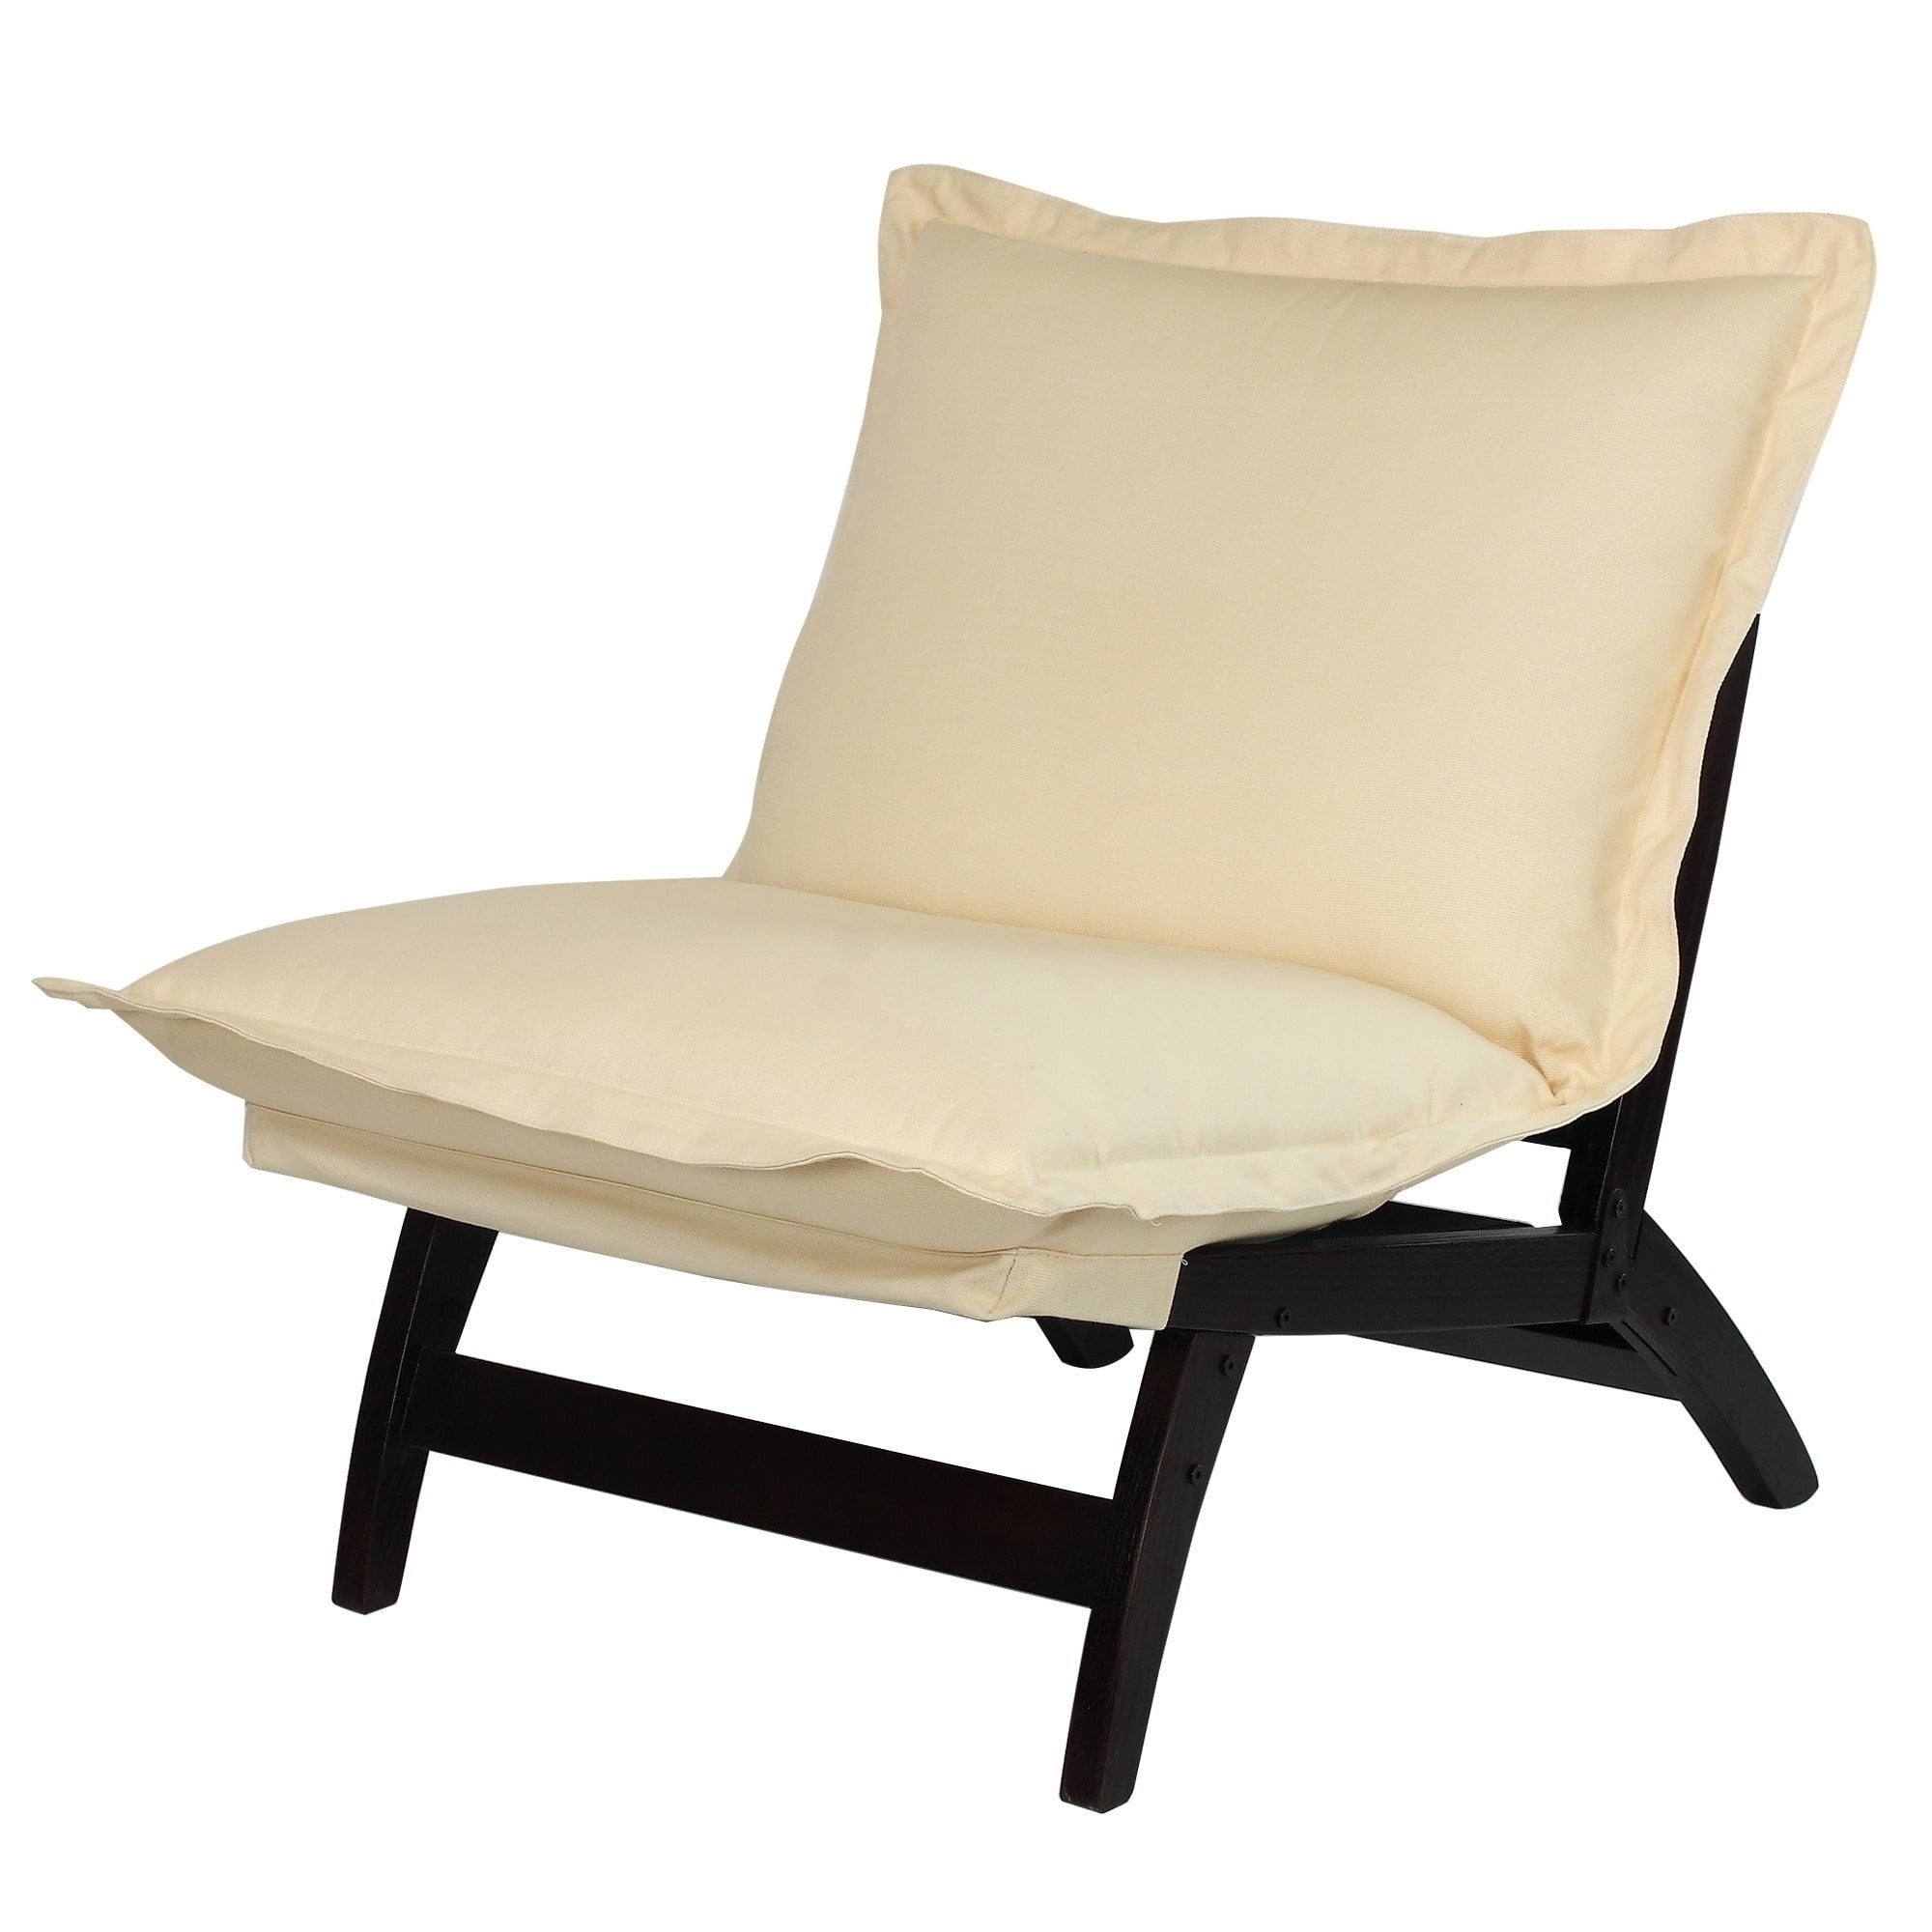 f chair suza products colors lounger various burke hr in by decor nuevo design